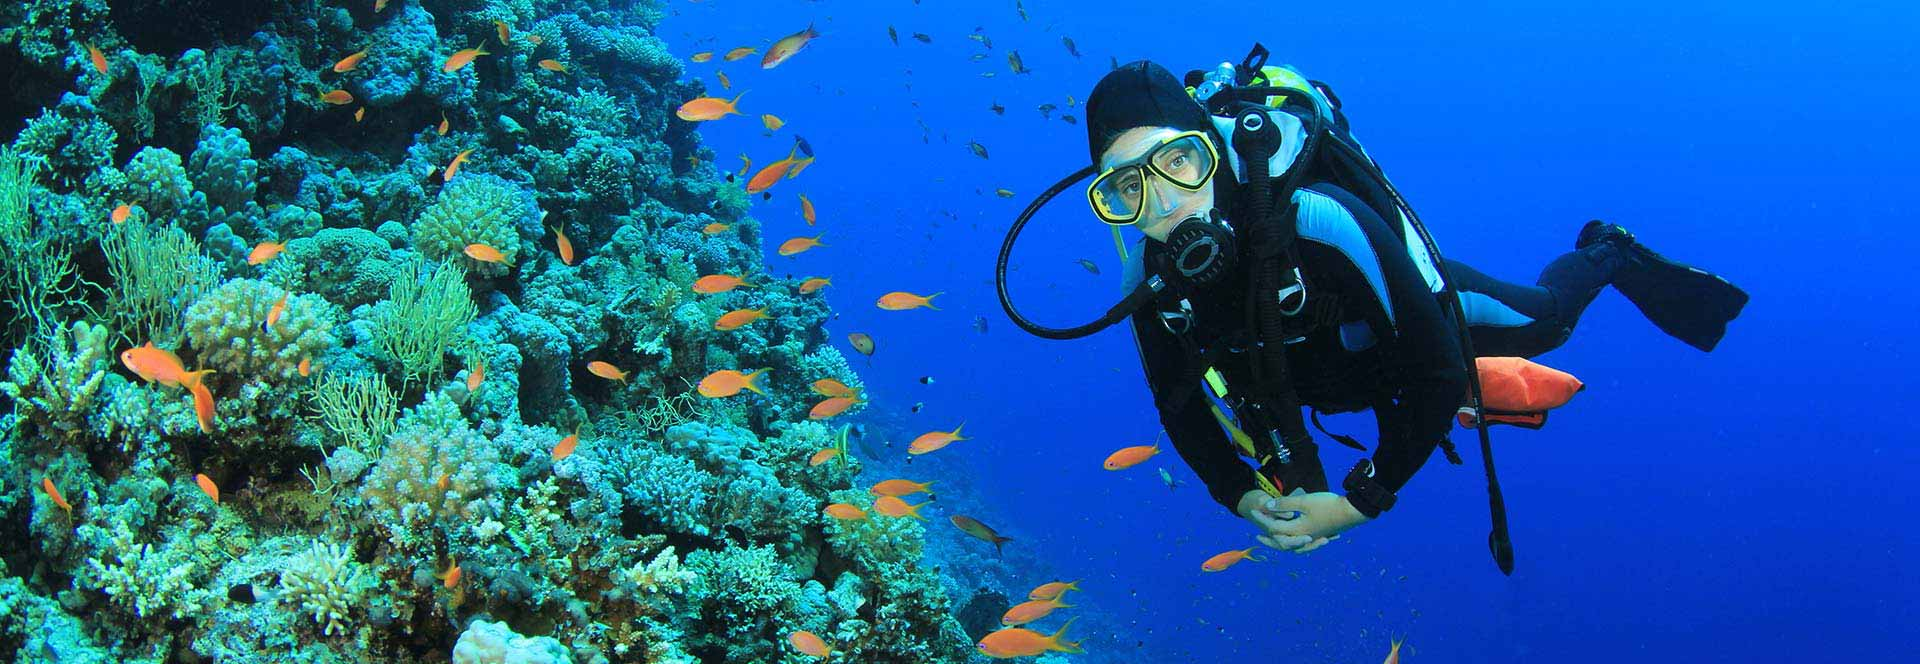 Red Sea Diving Holidays Scuba Diving Holidays In The Red Sea - The 10 best scuba diving locations in the world